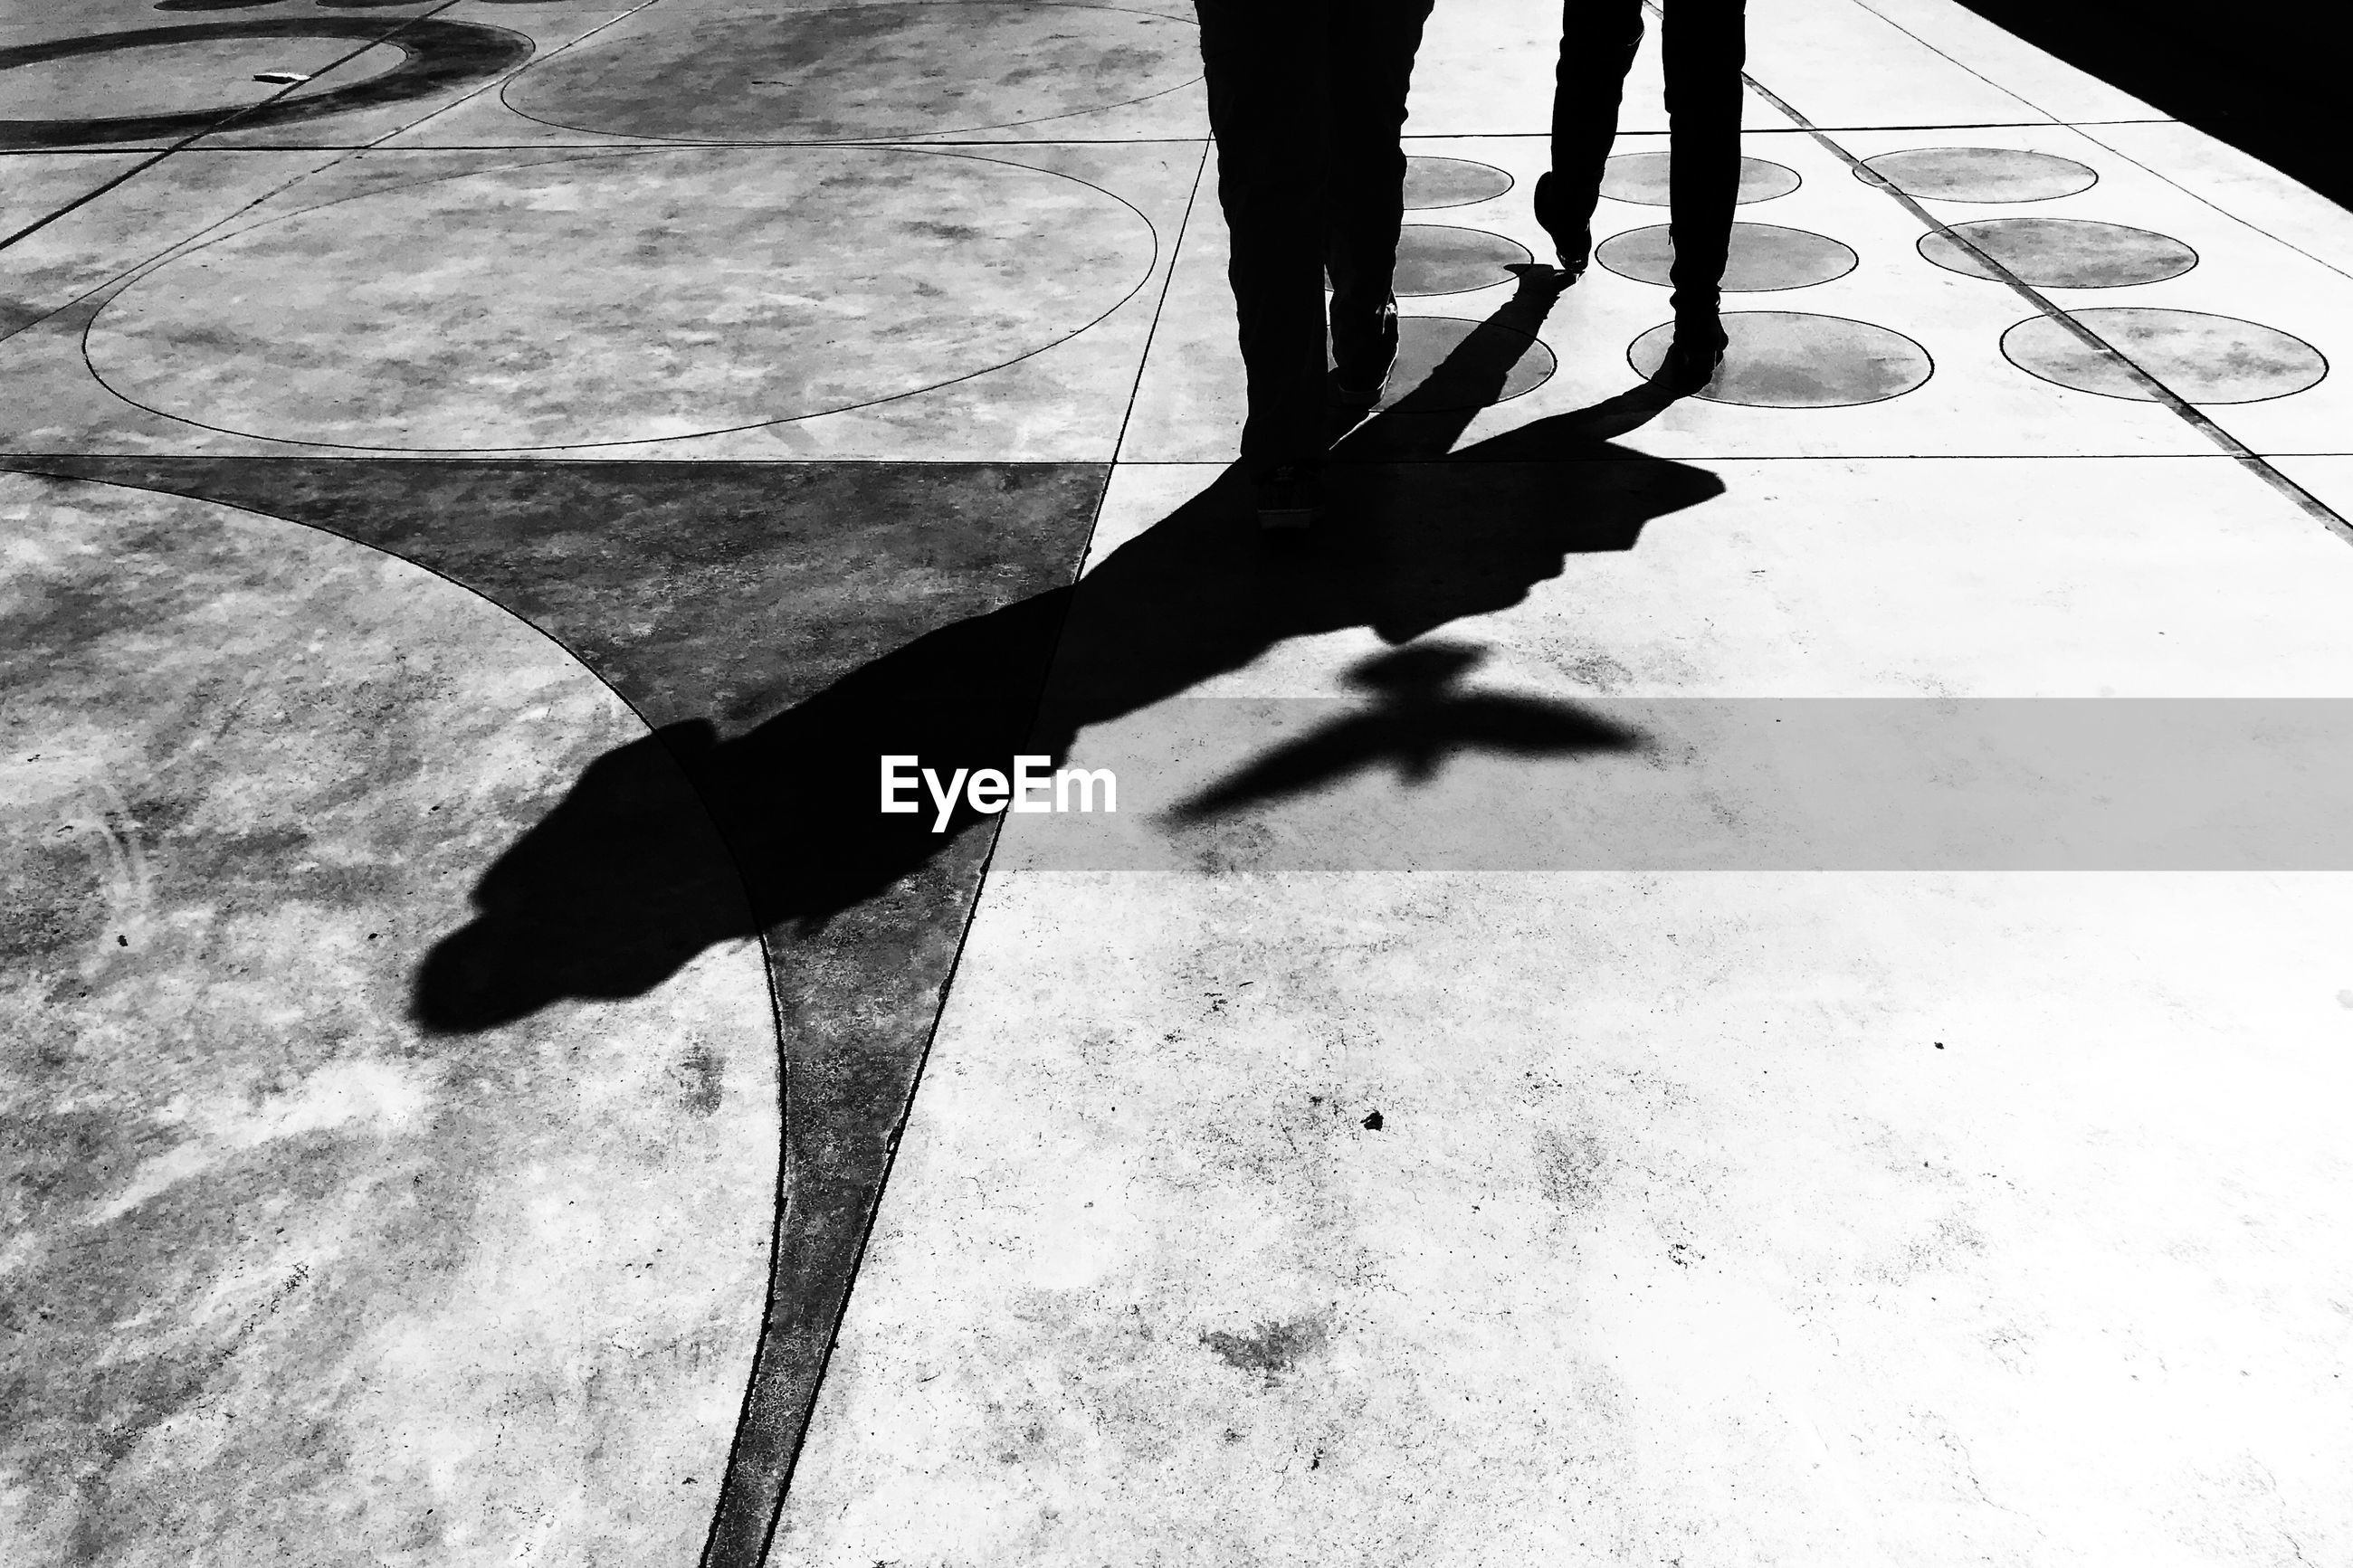 low section, one person, real people, shadow, sunlight, body part, human body part, standing, day, human leg, high angle view, lifestyles, nature, walking, unrecognizable person, men, outdoors, leisure activity, flooring, human foot, focus on shadow, tiled floor